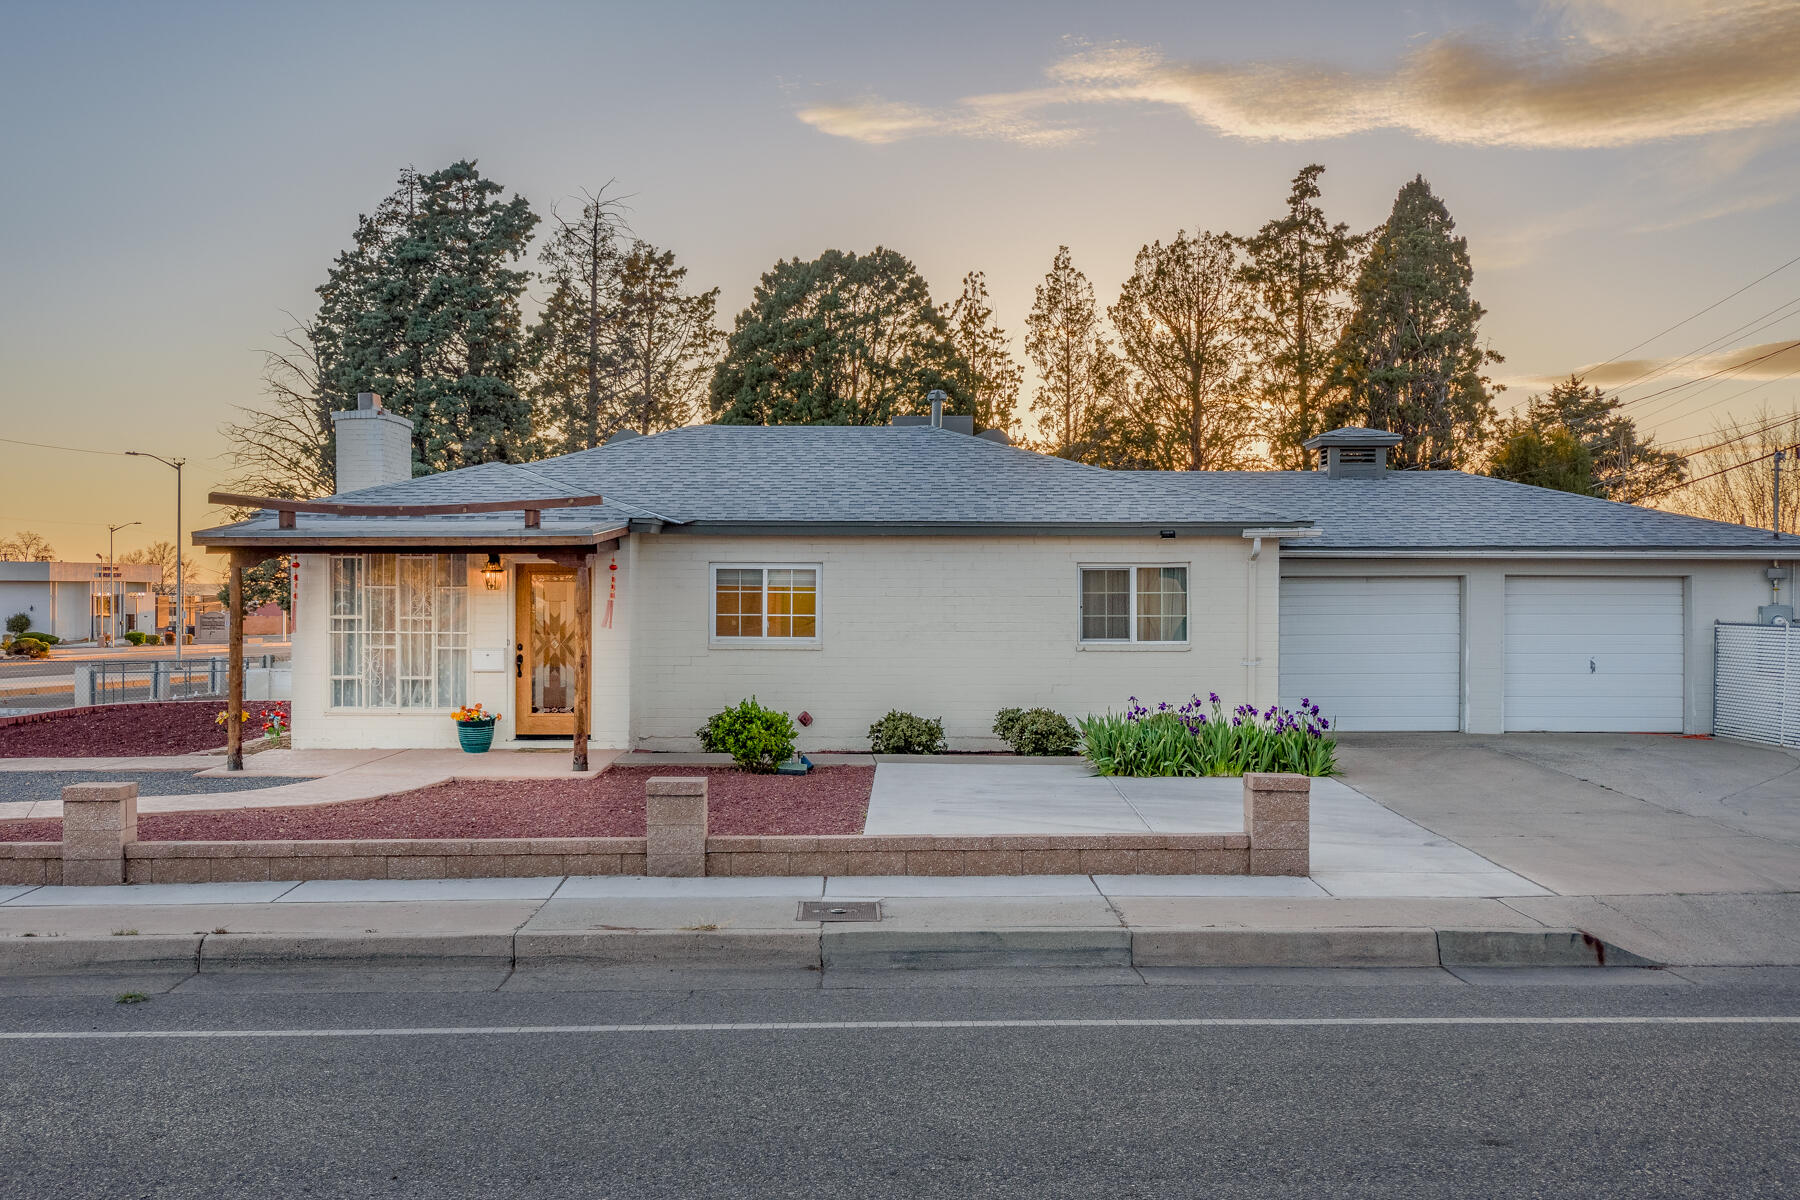 A must see hard to find Gem. Conveniently located near restaurants and shopping this lovely home has everything you could want. The kitchen is fitted with Quartz countertops and tile backsplash. Bathrooms have been remodeled. Fresh front yard landscaping. Huge .18 acre corner lot with backyard access to store your toys. Refrigerated air, 2 car garage. Home also includes a beautiful sunroom not included in the square footage. Schedule your tour today!!